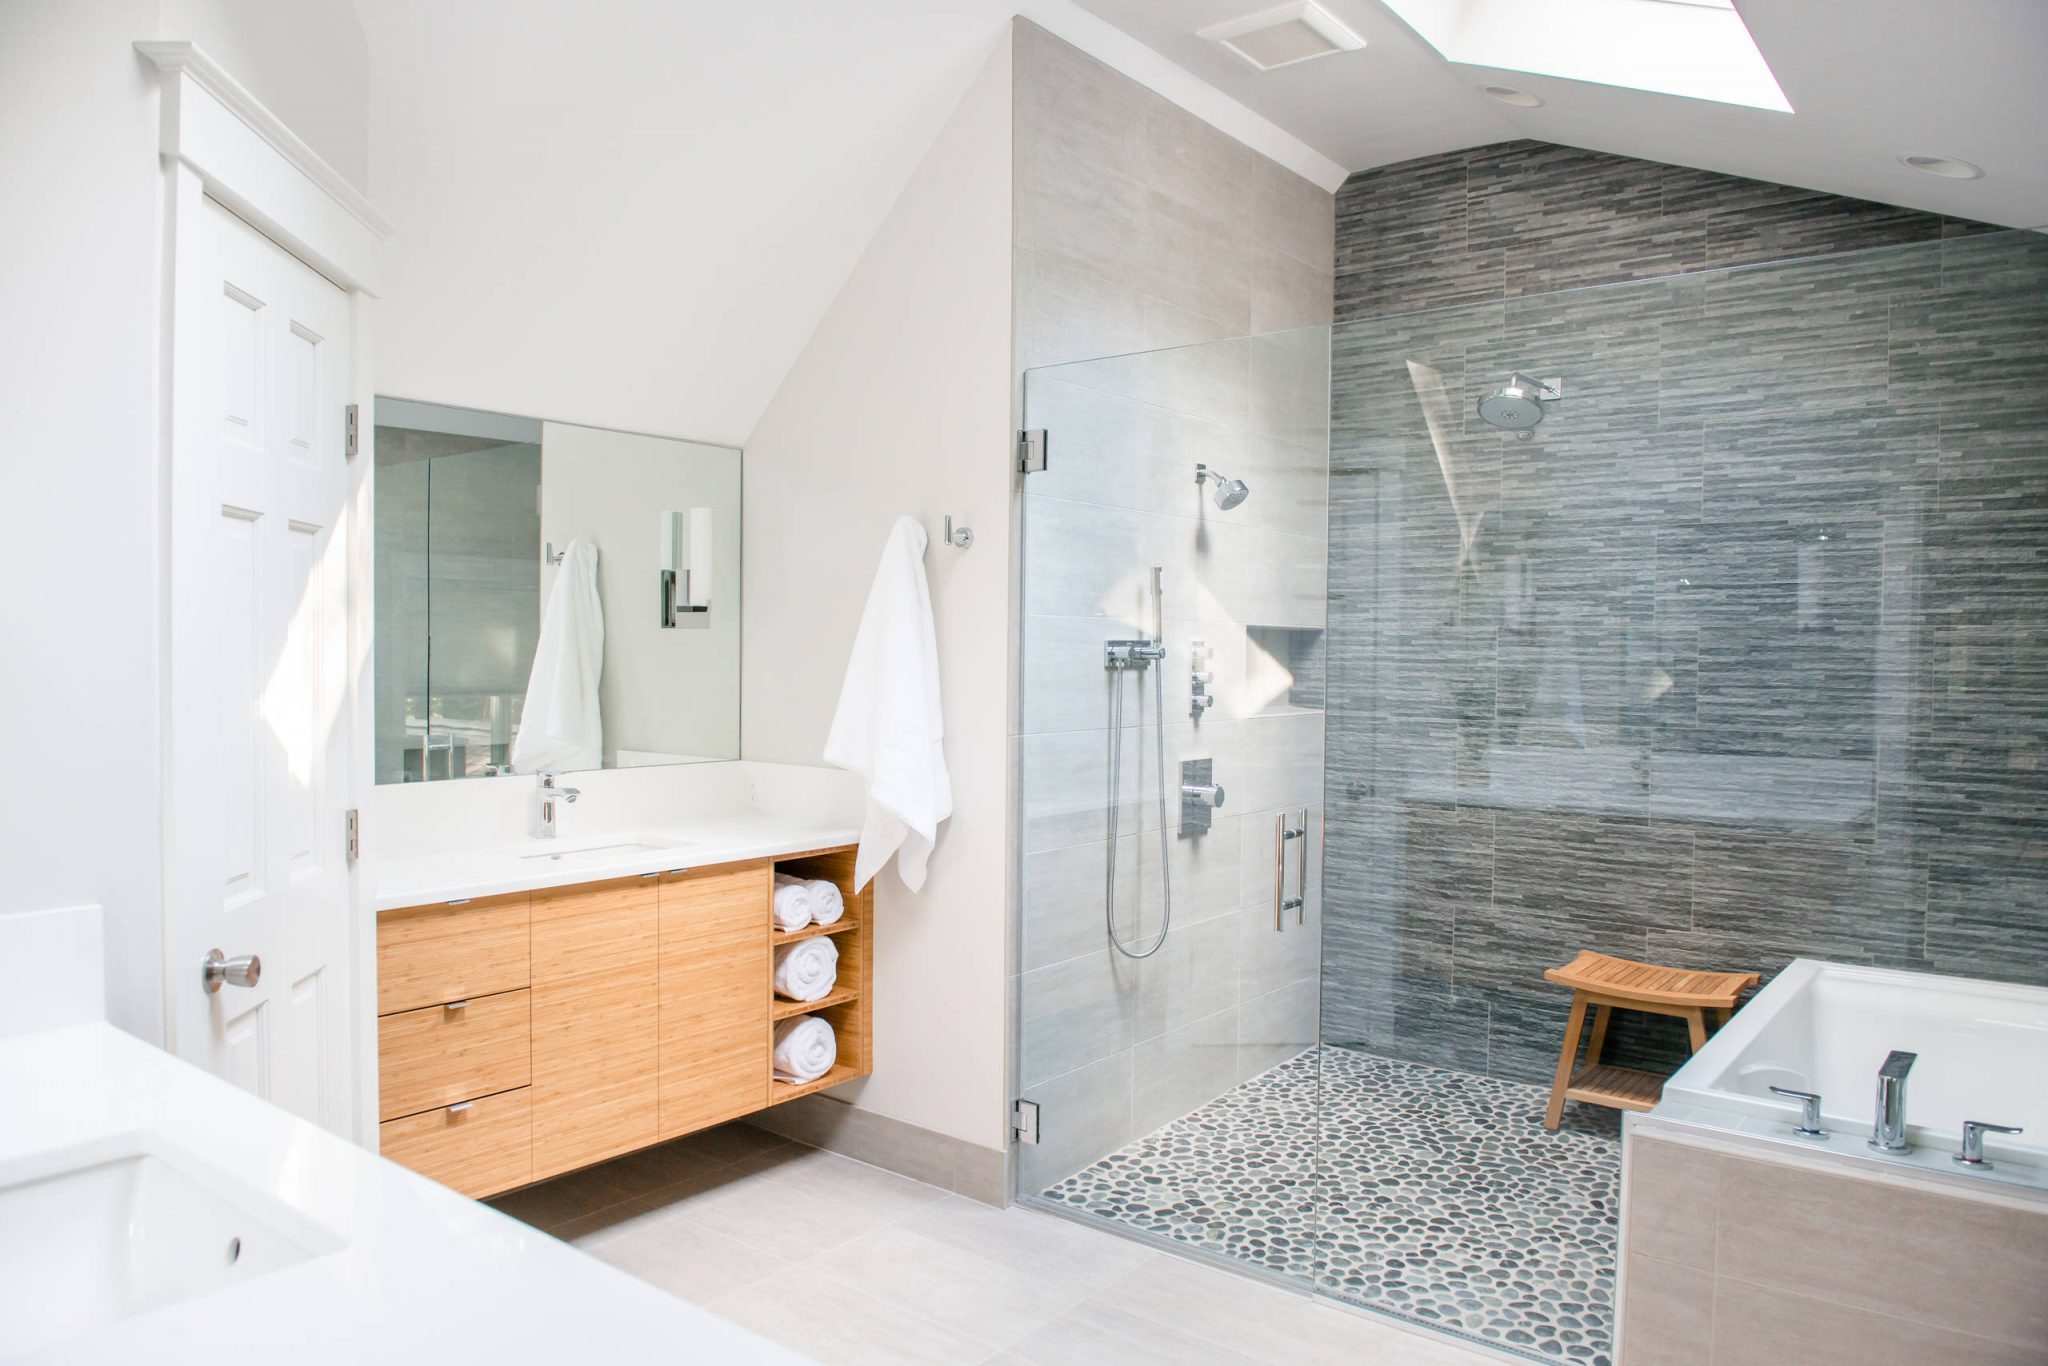 The Tub Shower Conversion See It Do It